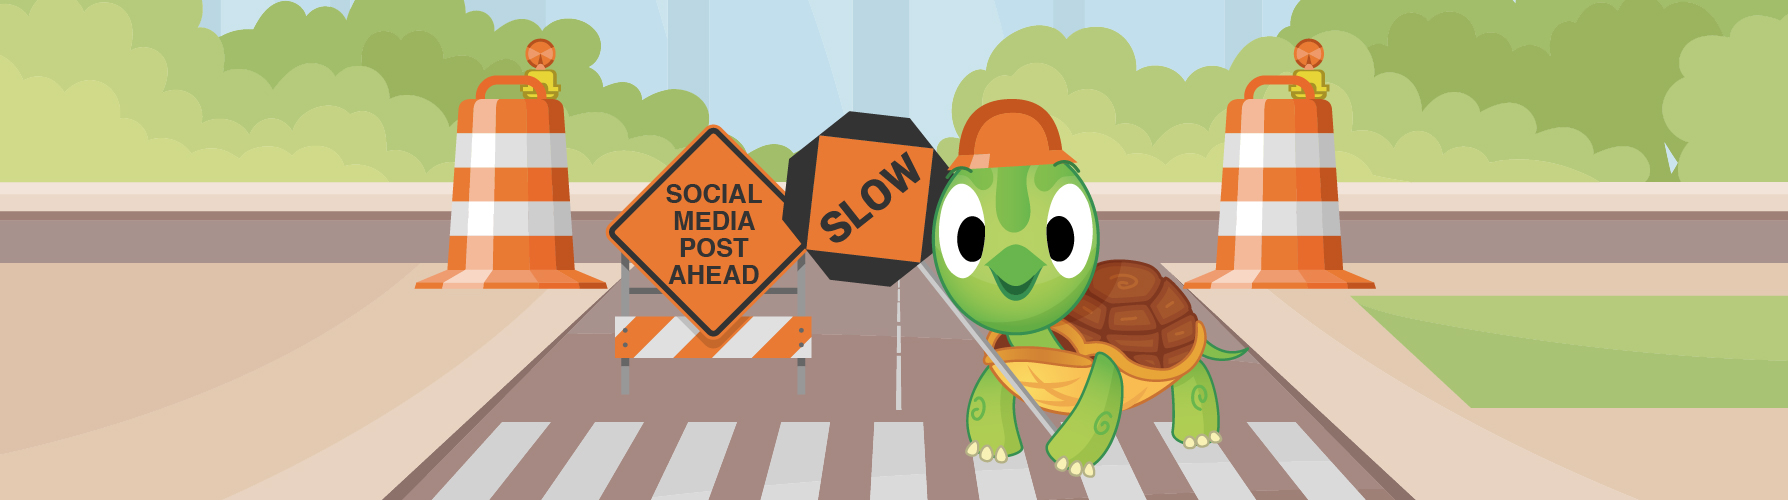 Cartoon turtle in construction gear at road crossing